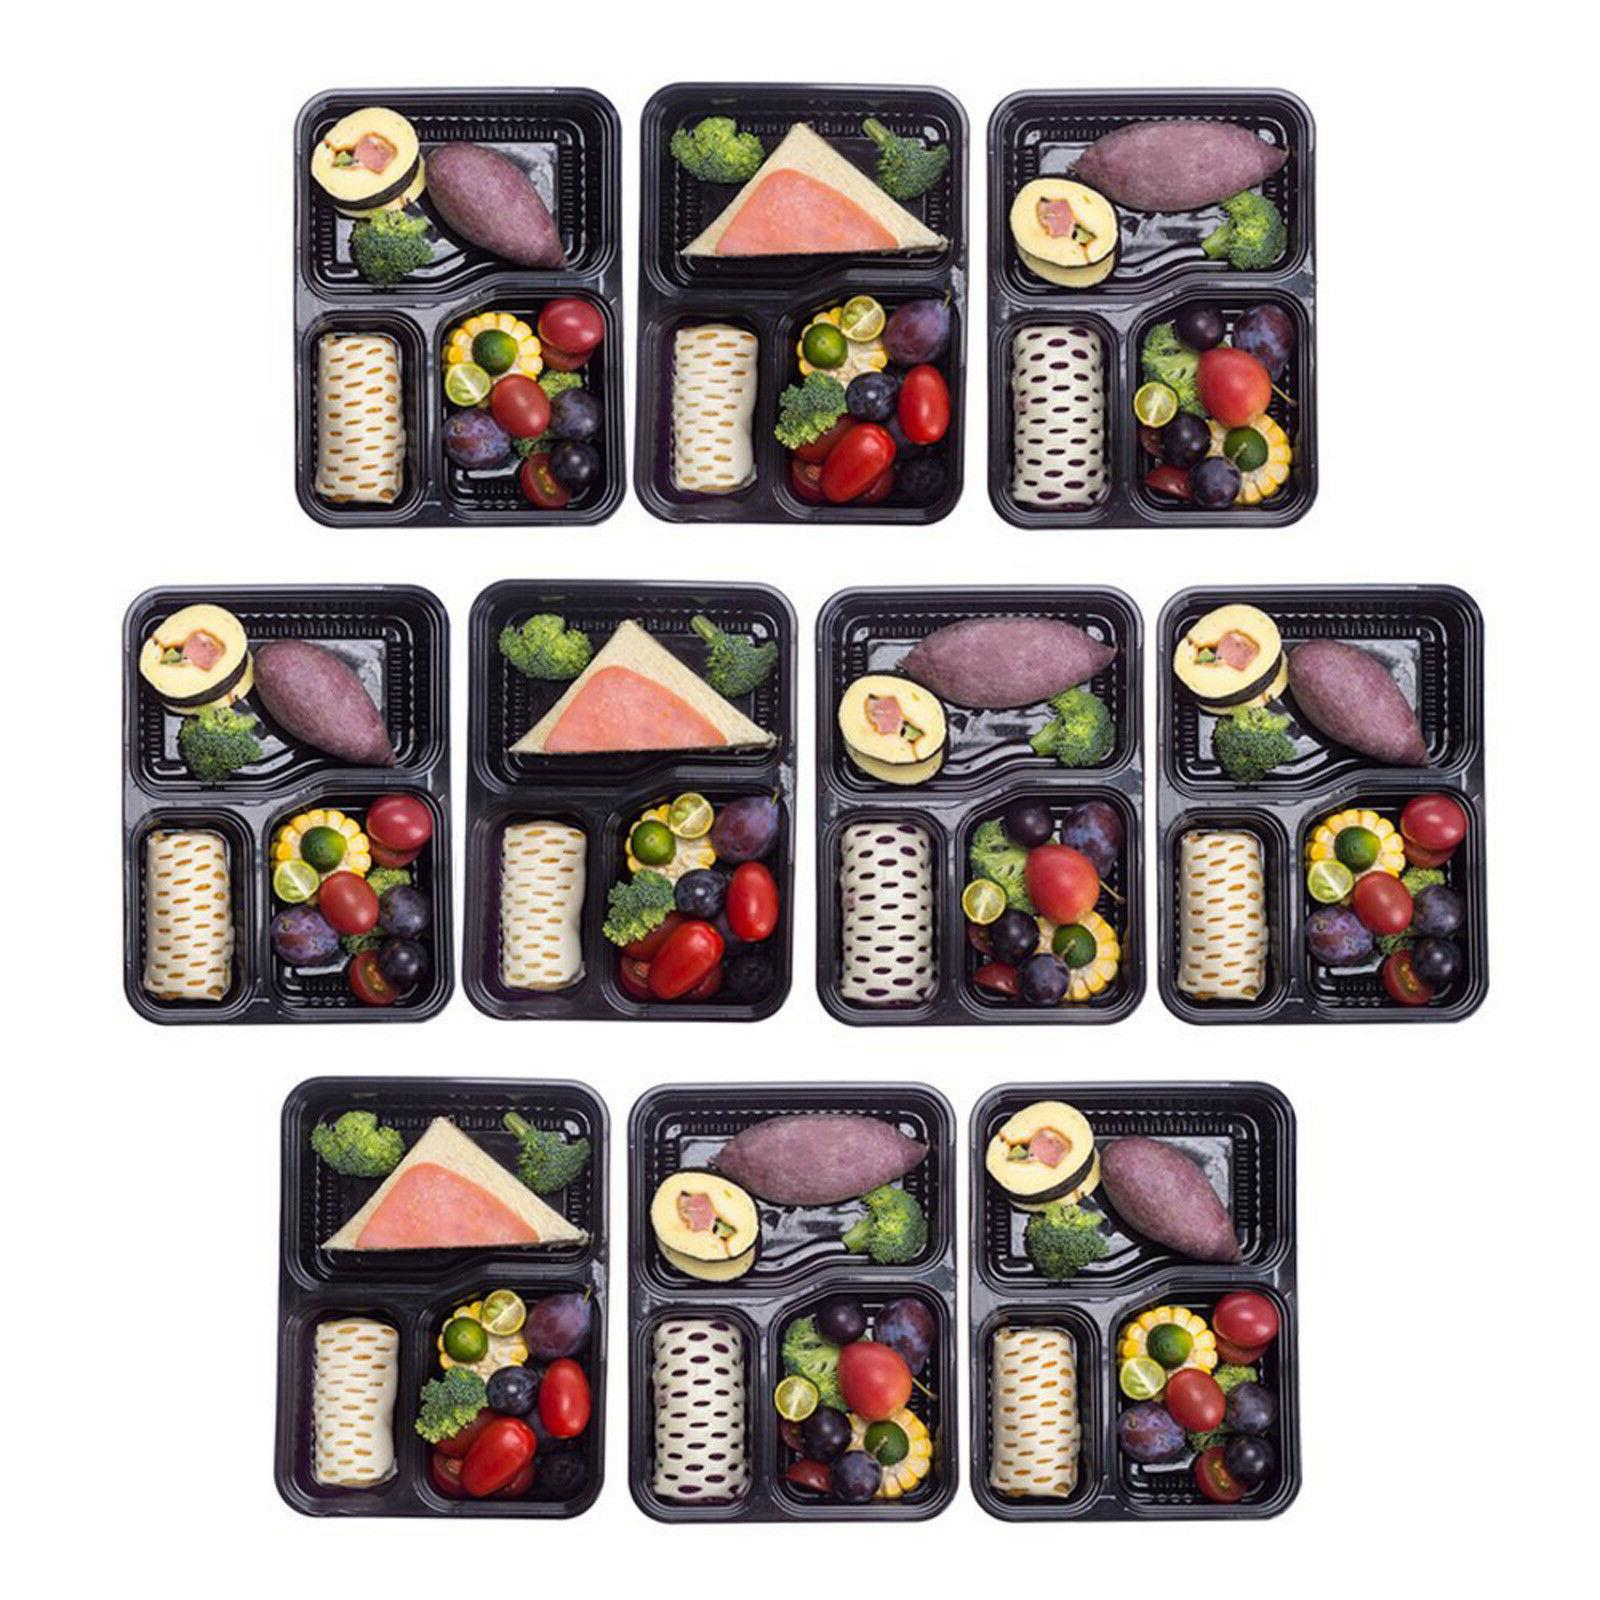 20 Meal Compartment Reusable